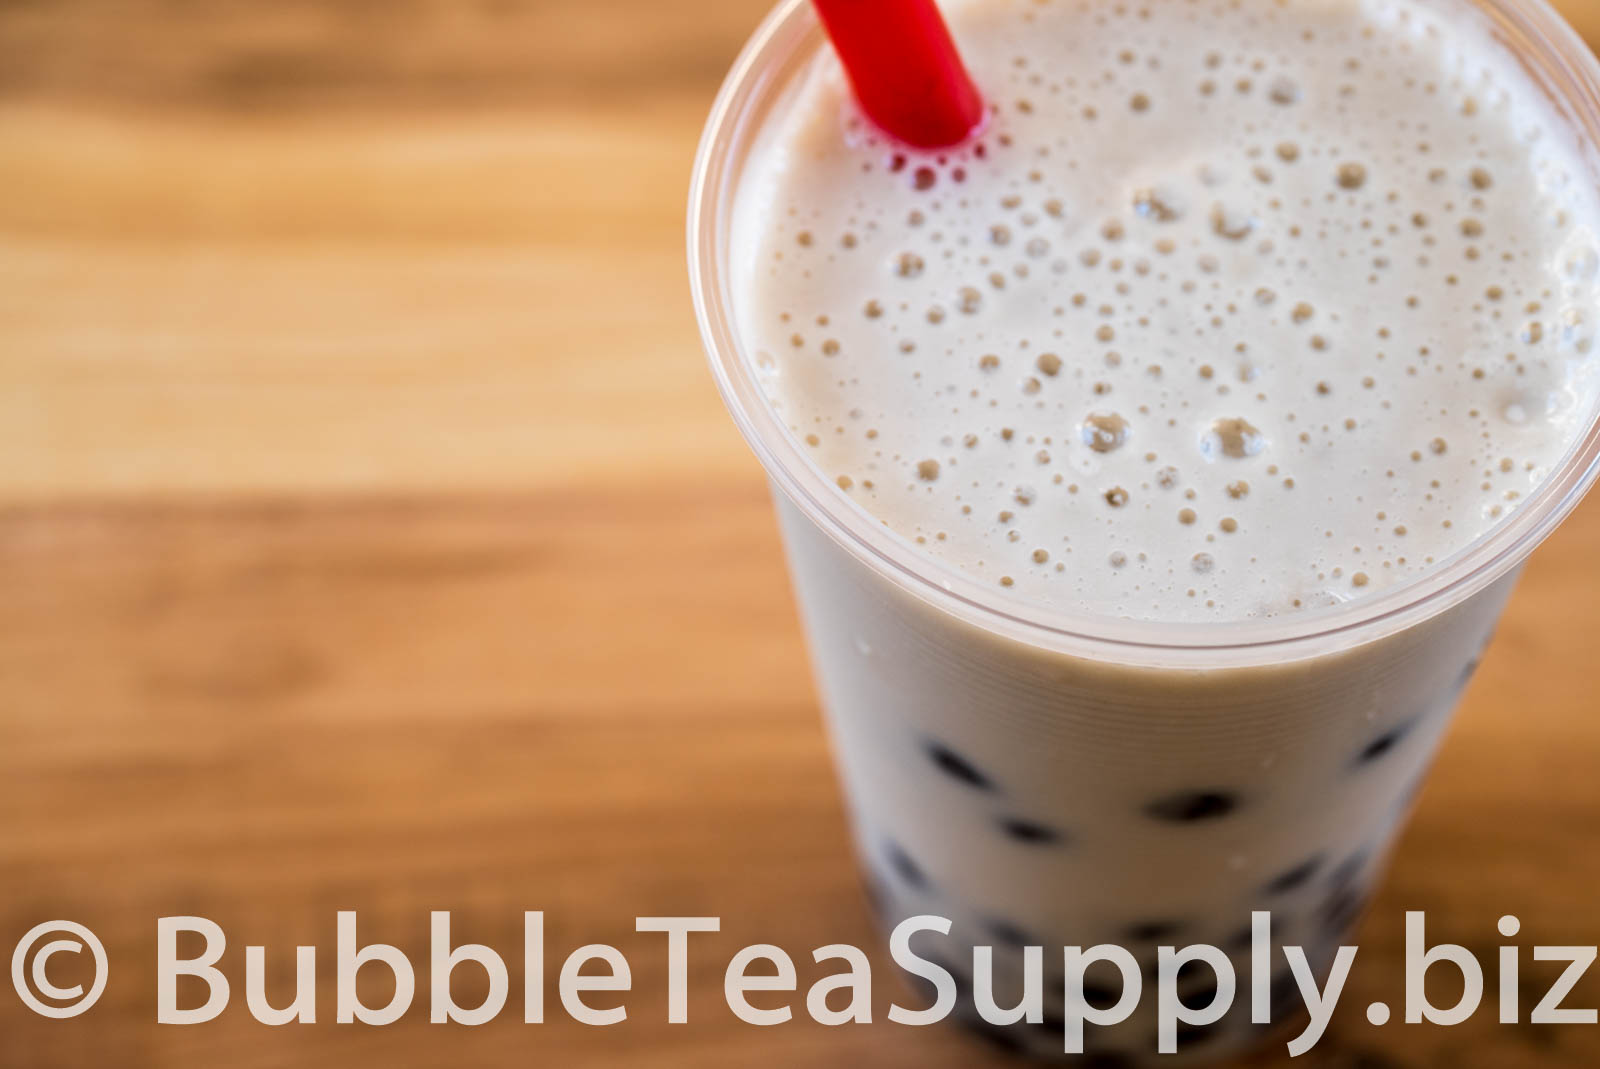 How to Make an Organic Hawaiian Taro Boba Bubble Tea Smoothie Drink by Bubble Tea Supply